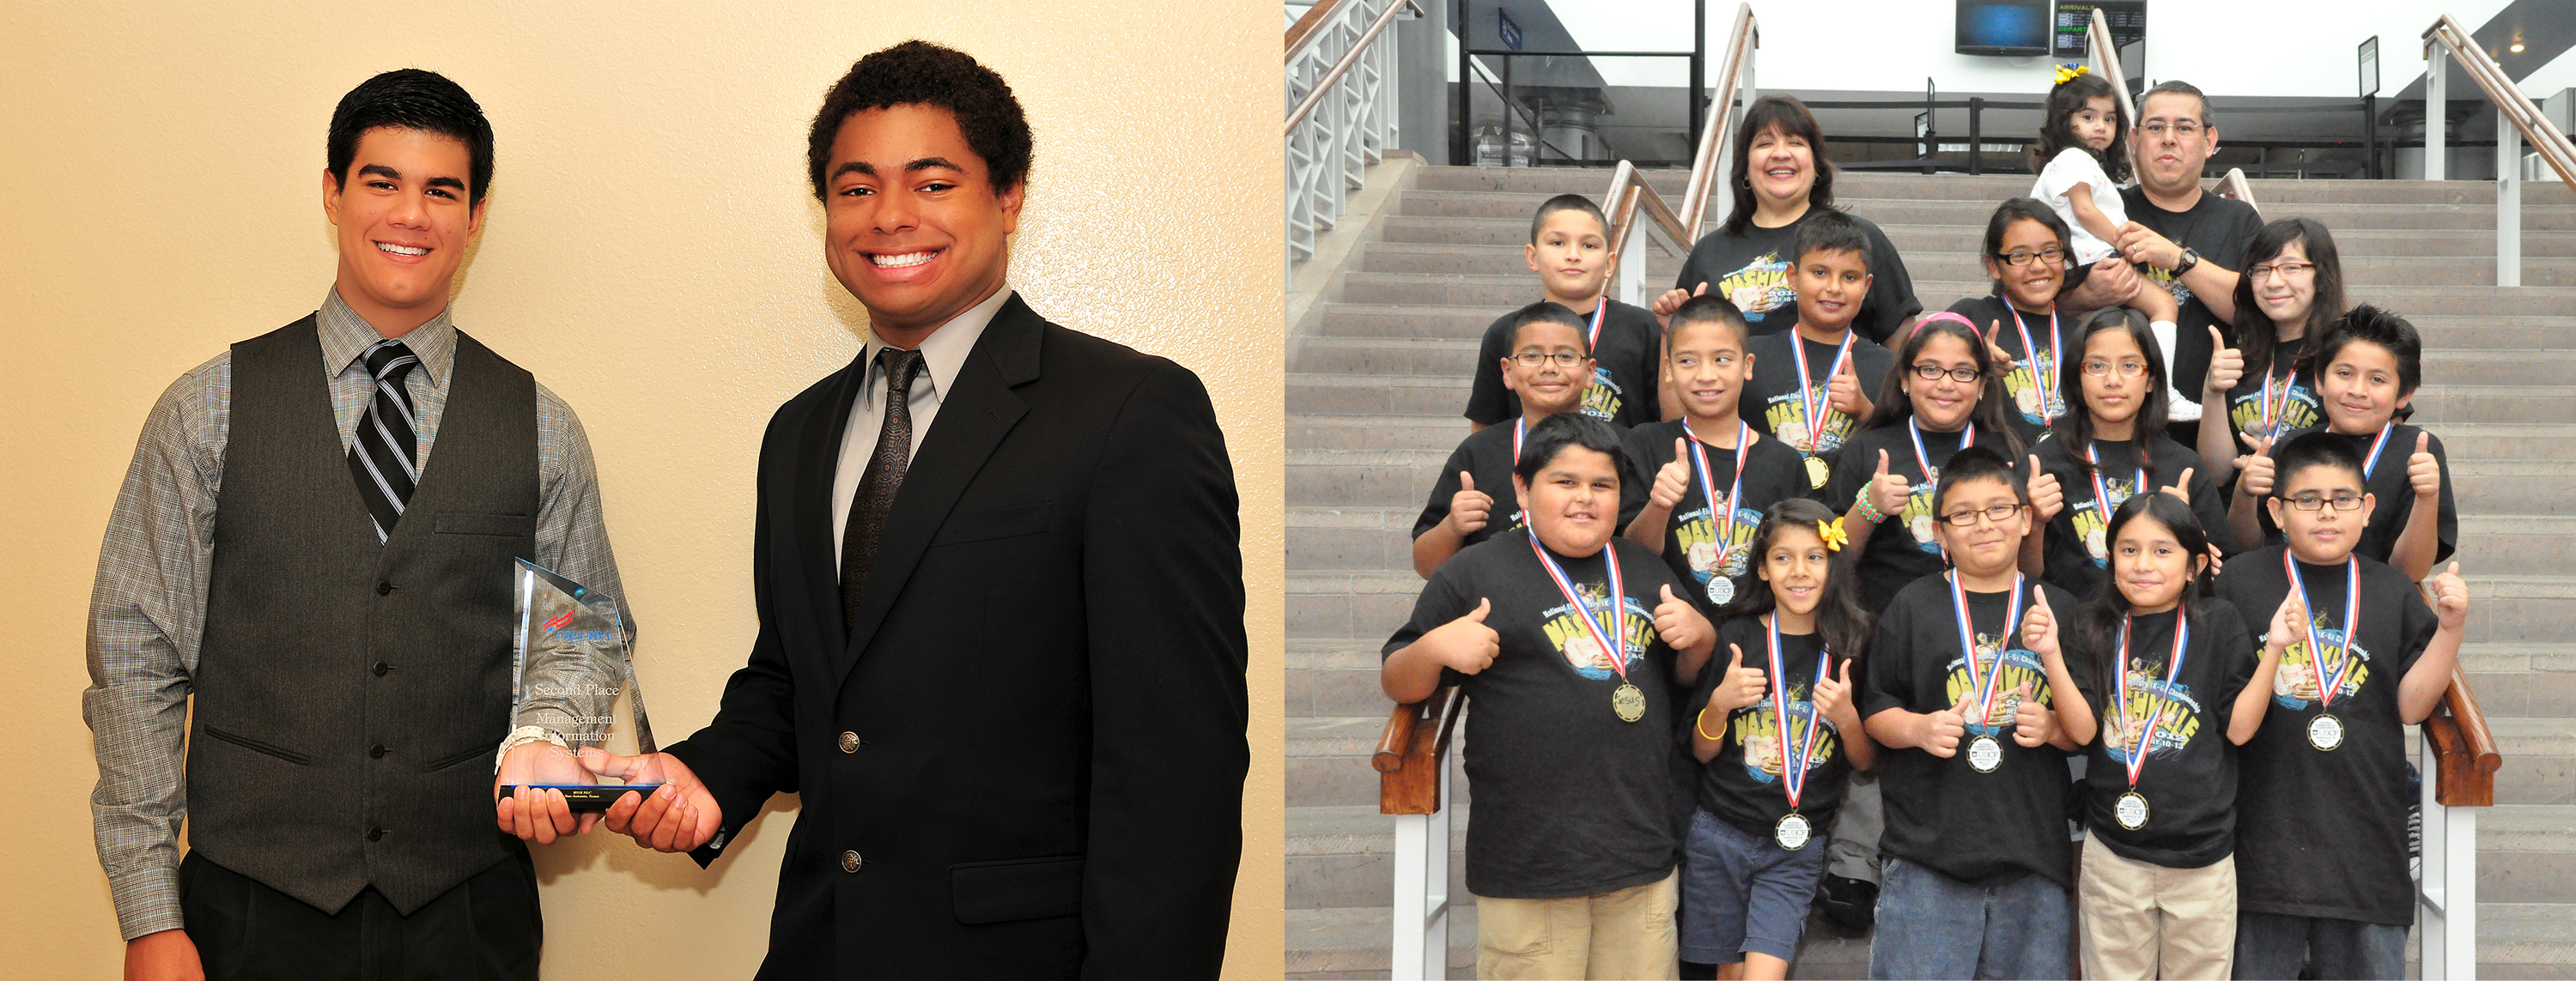 HCISD gives its student a competitive edge